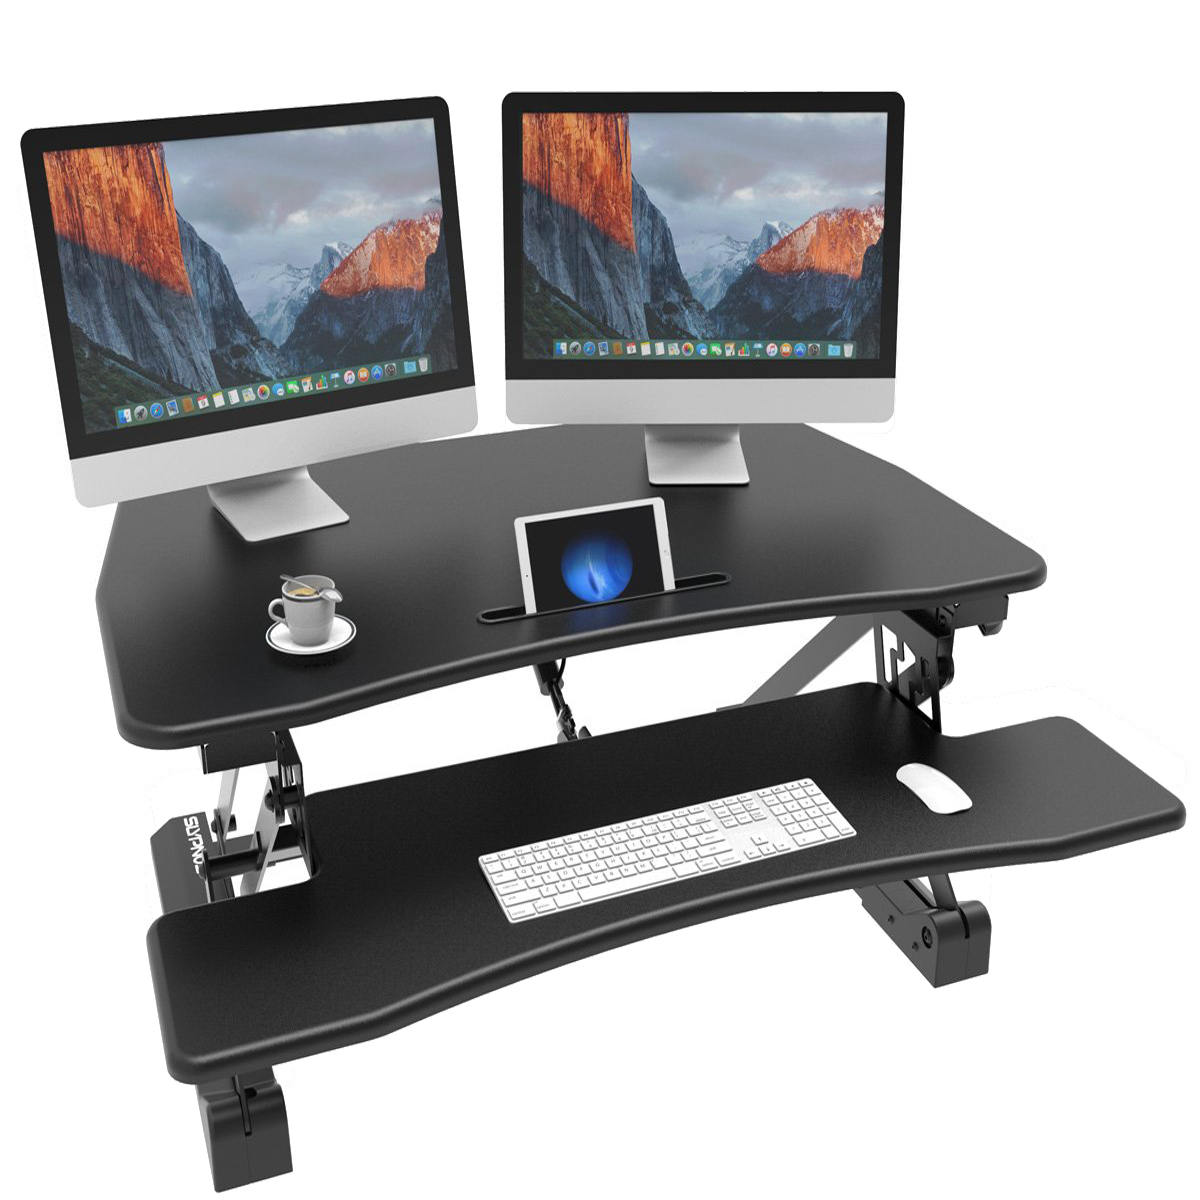 SLYPNOS Standing Desk Converter, 30u0027u0027 Stand Desk Adjustable Riser Computer  Workstation With Removable Keyboard And Mouse Deck For Home And Office, ...